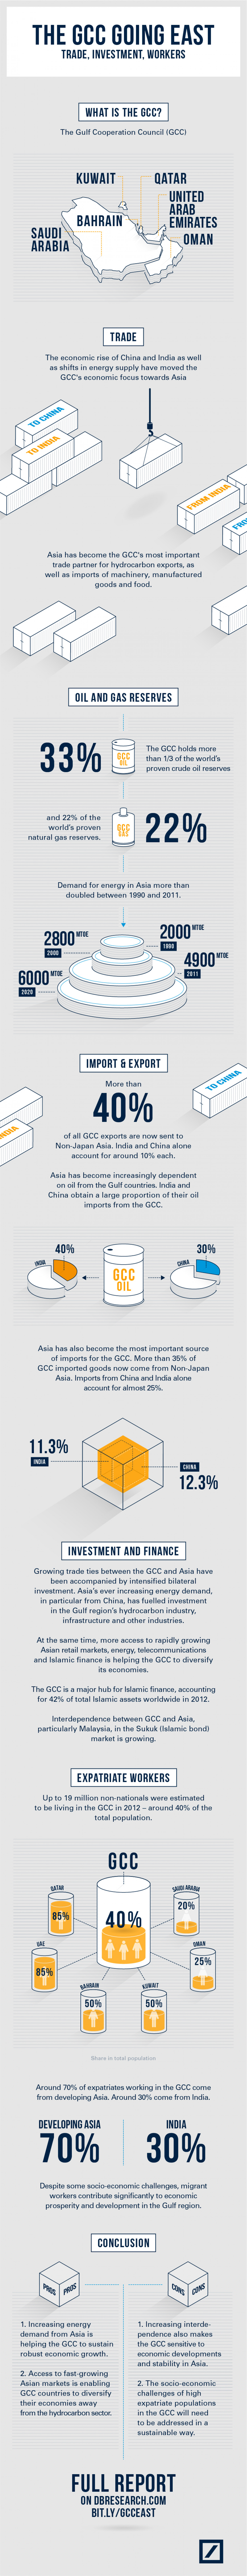 The GCC Going East Infographic